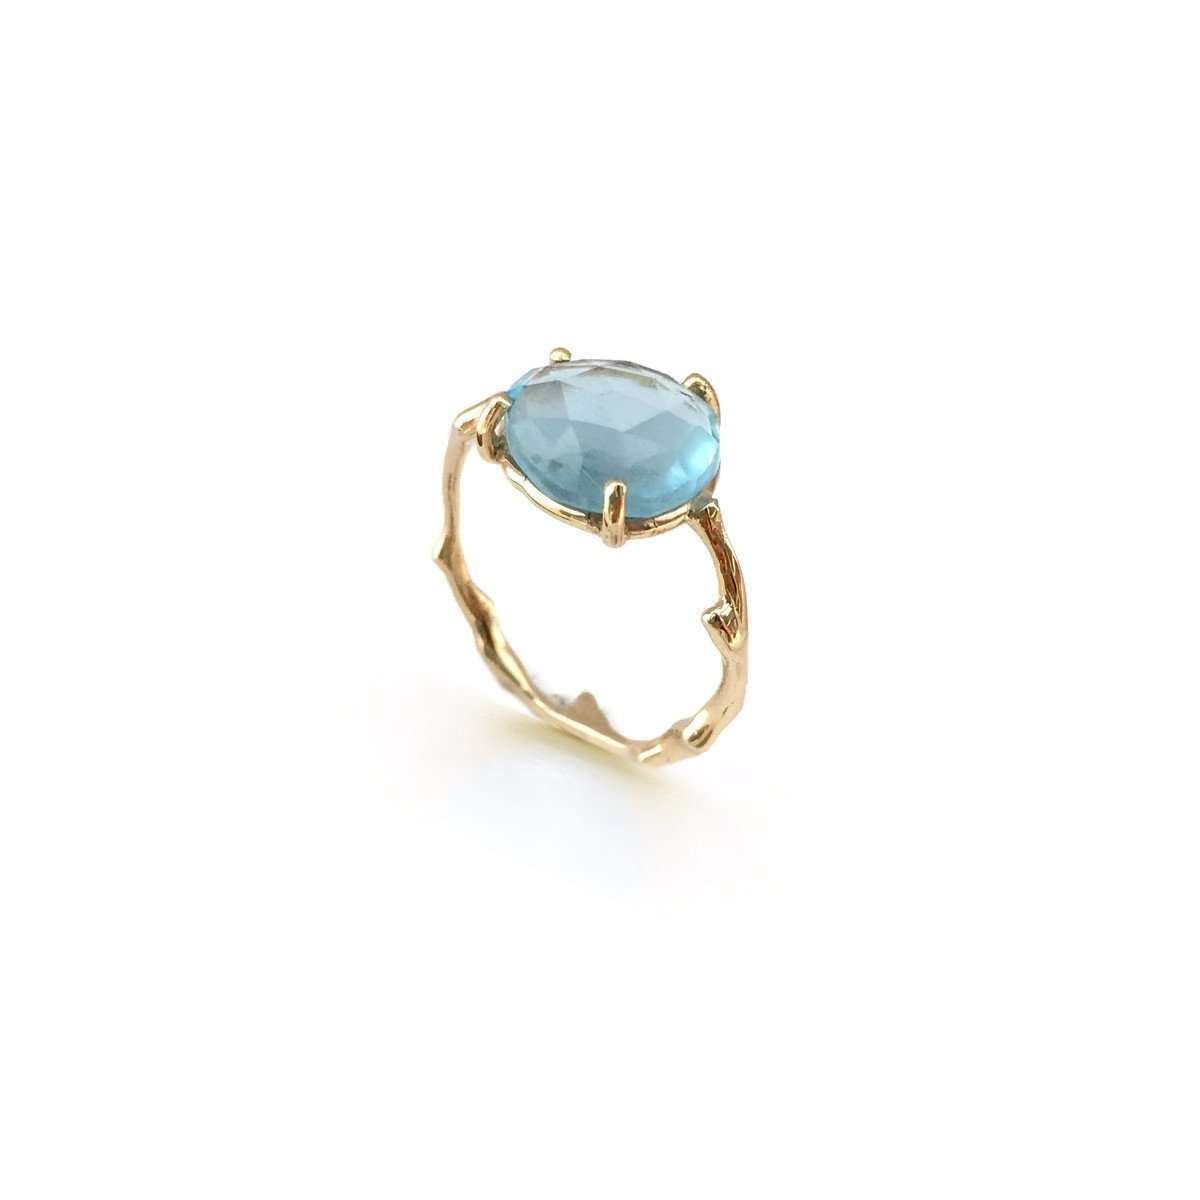 Twig Ring In Solid Gold With Freeform Rose Cut Blue Topaz